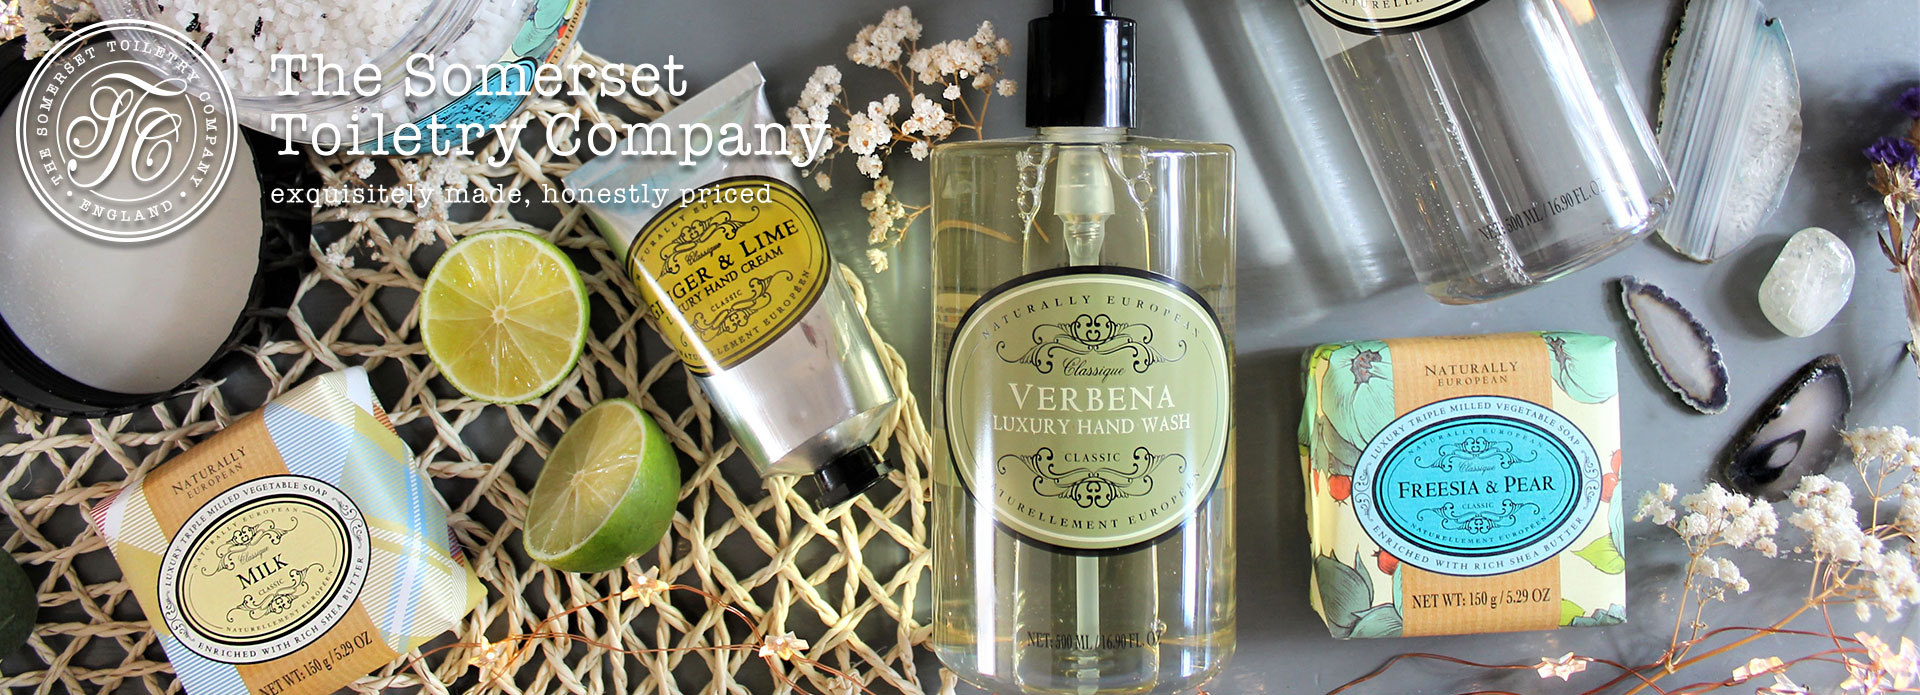 the-somerset-toiletry-company